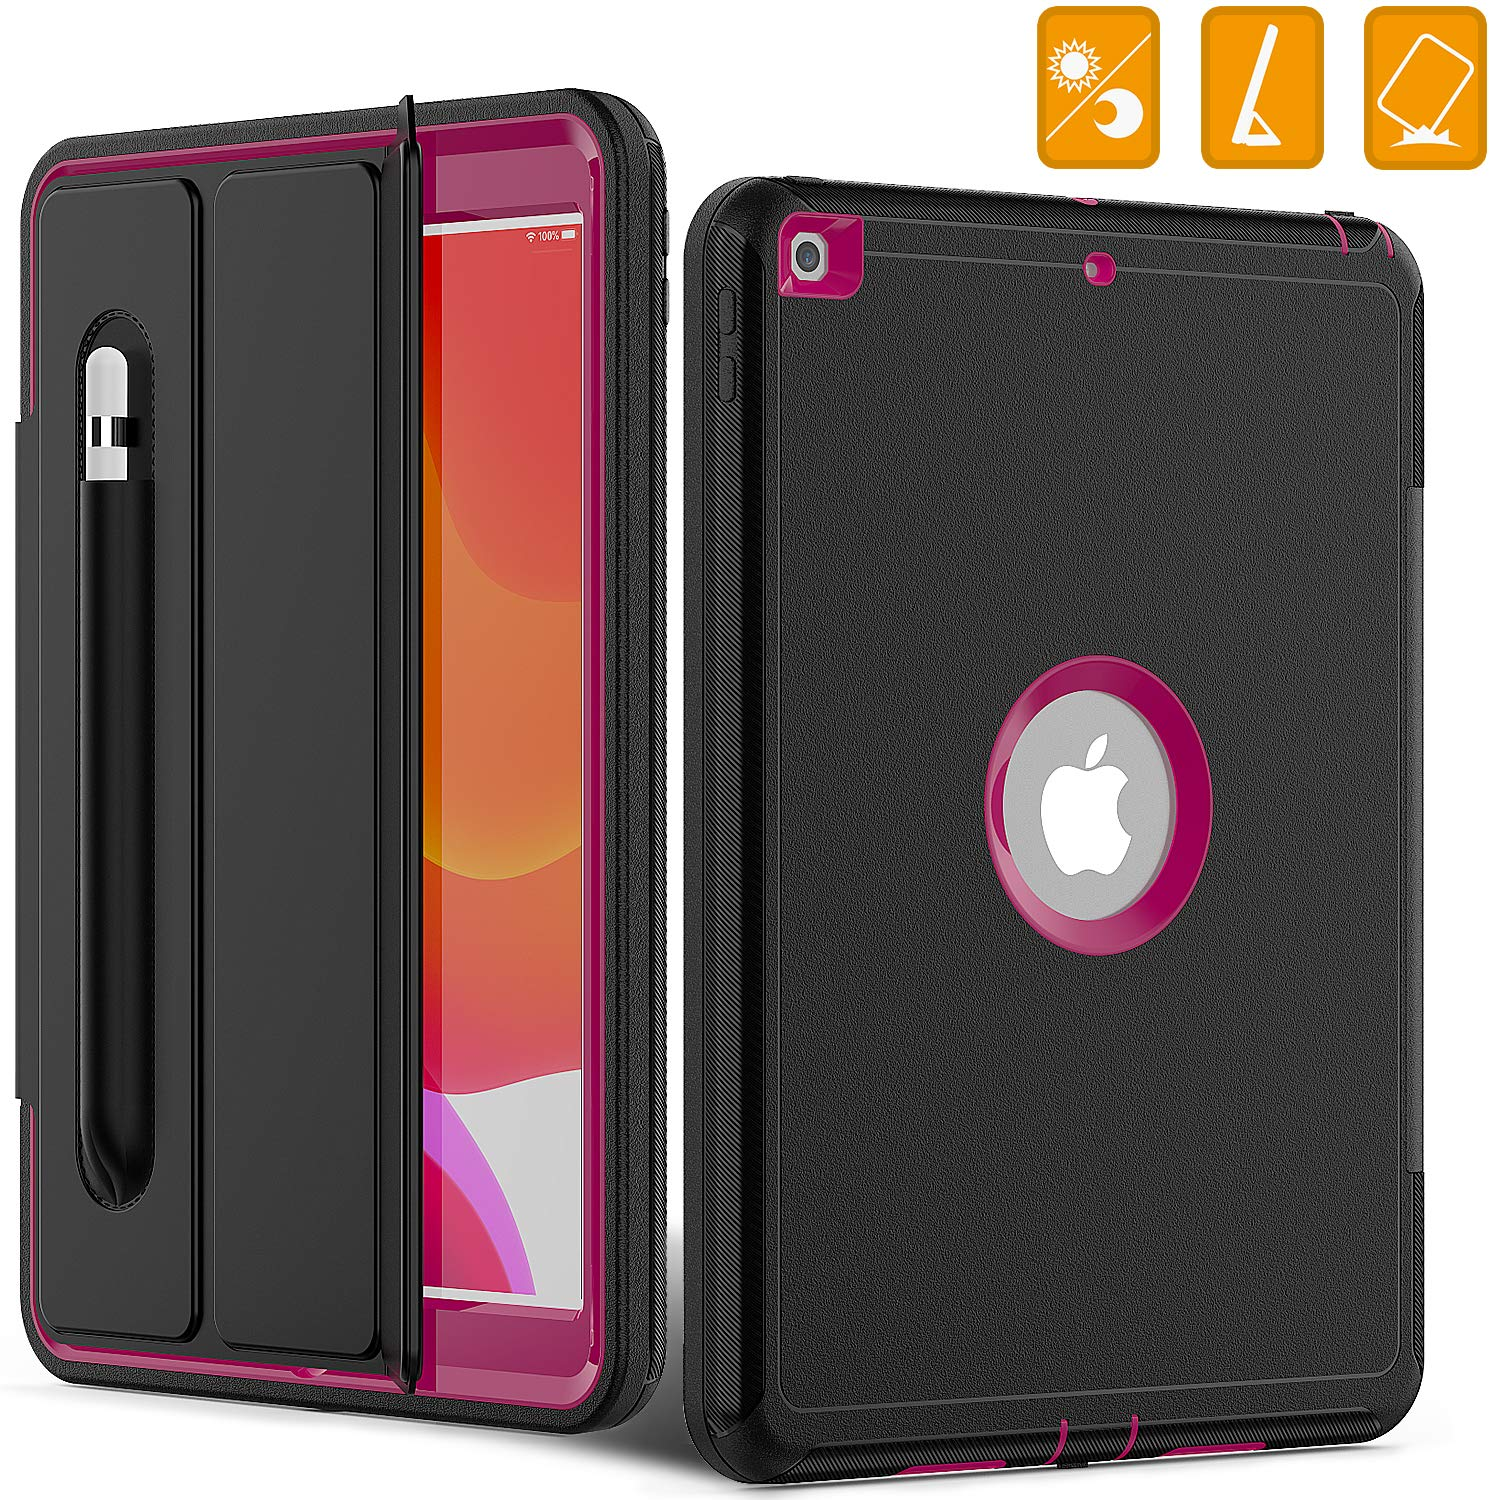 iPad 7th Generation 10.2 Cover ,iPad 10.2 2019 Case, [Smart Auto Sleep Wake Cover ],Heavy Duty Shockproof Rugged Protective Case with Stand Pencil Holder for iPad 7th Generation10.2 (Rose red)